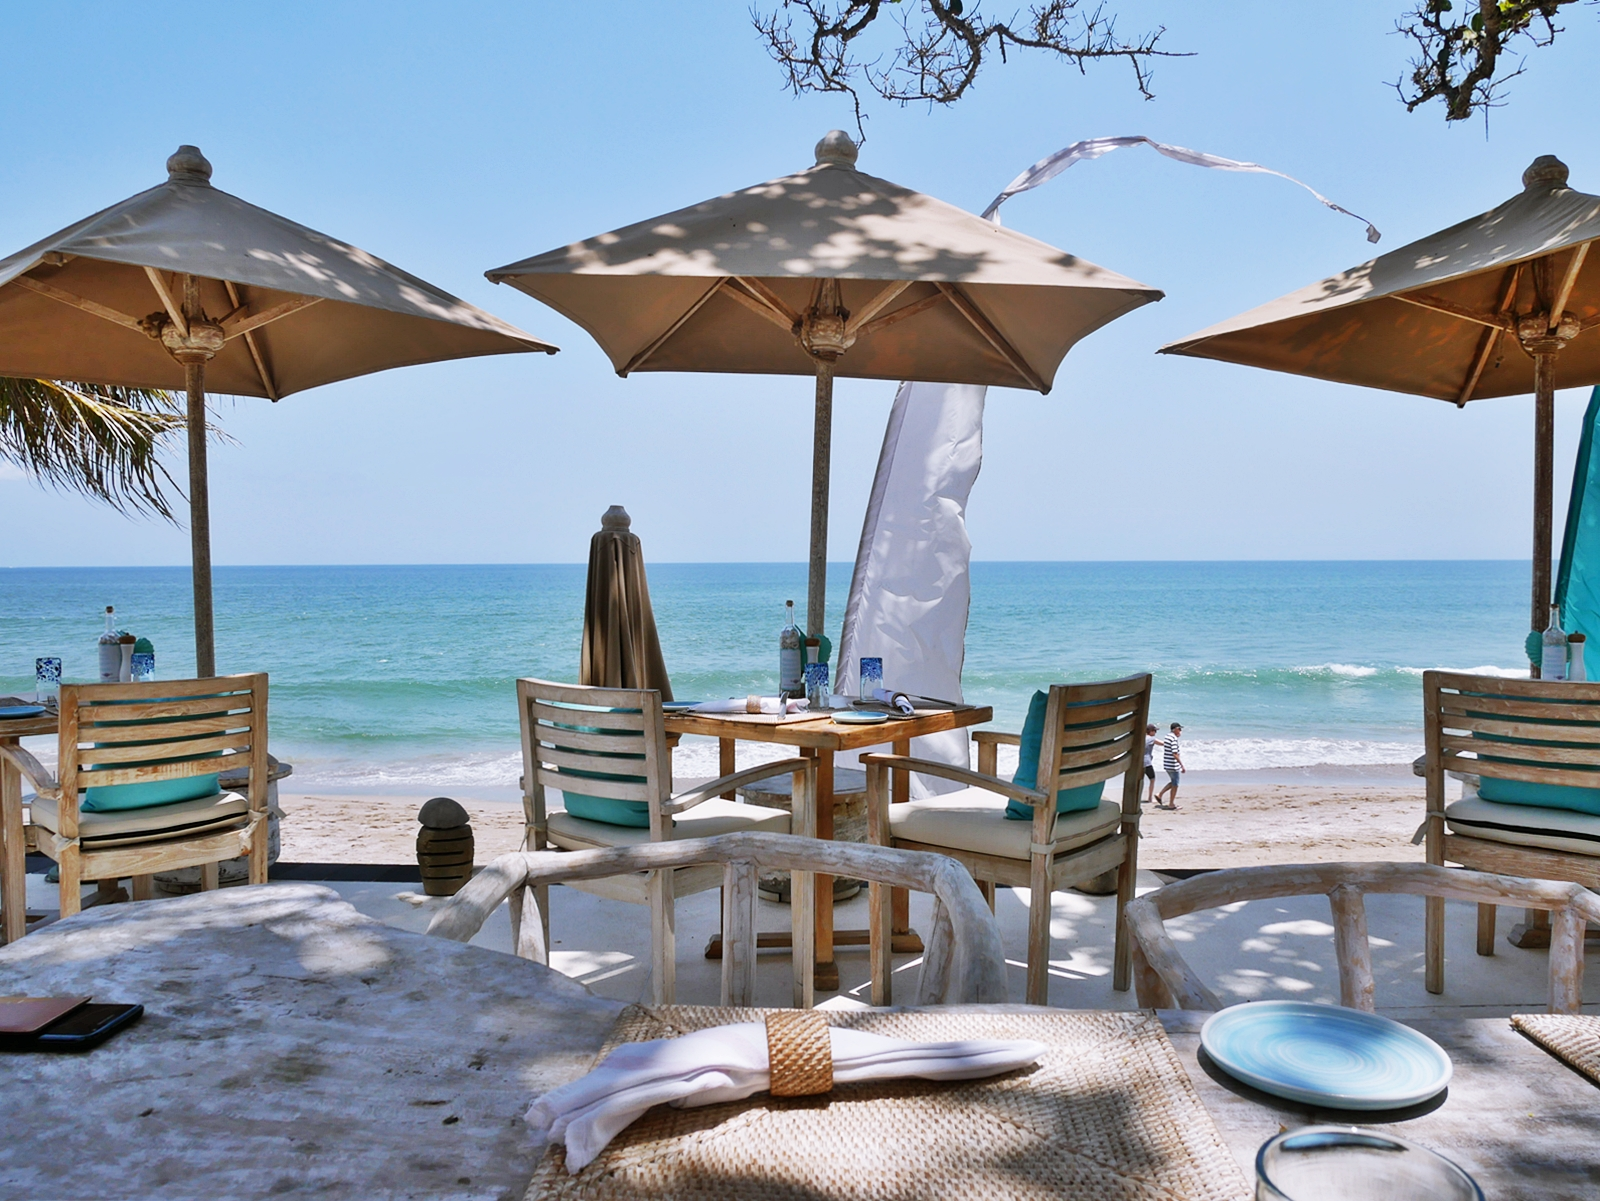 DELUXSHIONIST LUXURY TRAVEL - A TRANQUIL MOMENT AT THE SEMINYAK BEACH RESORT